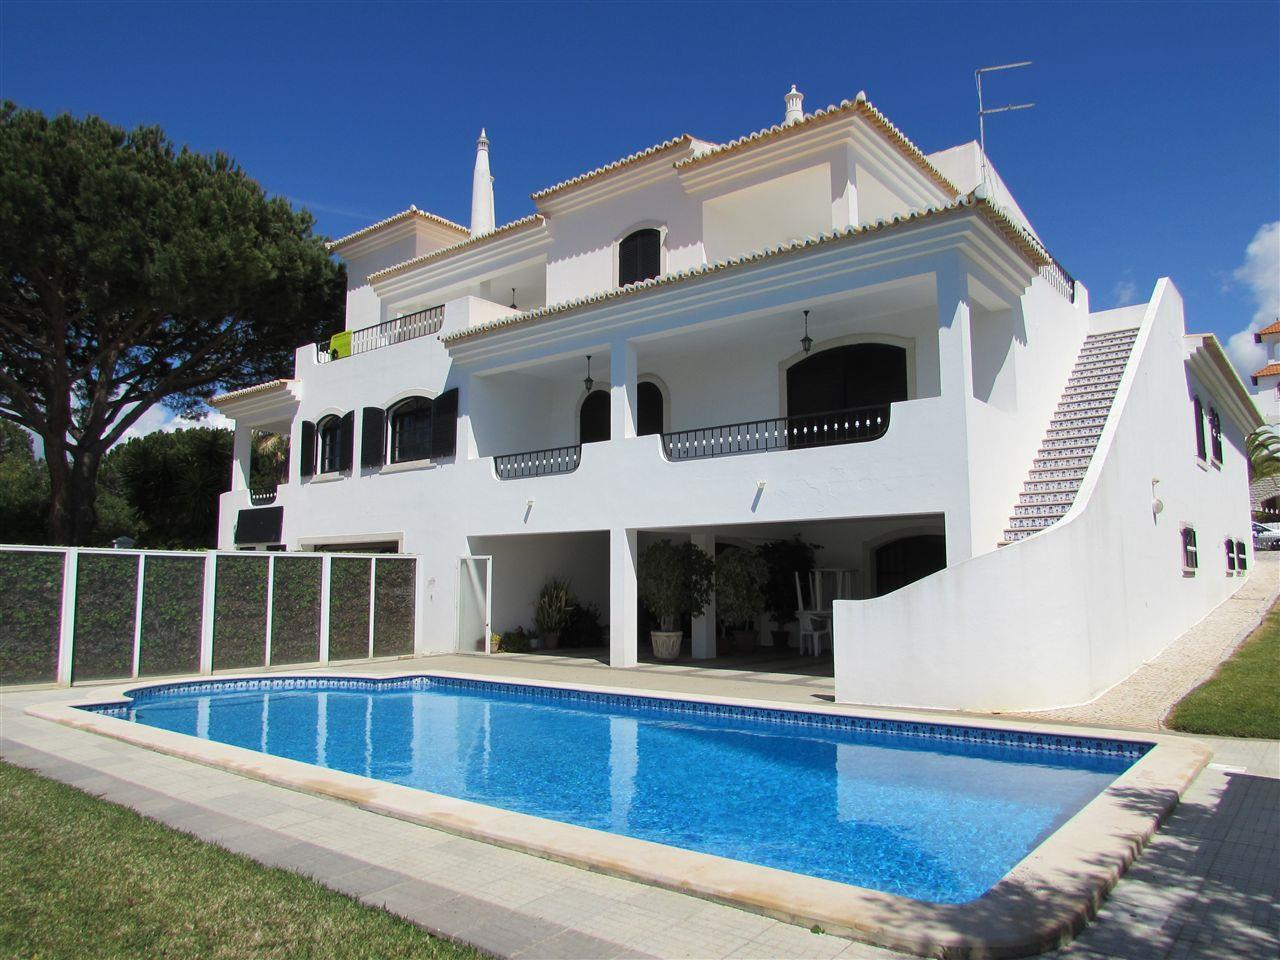 Single Family Home for Sale at Detached house, 7 bedrooms, for Sale Loule, Algarve Portugal